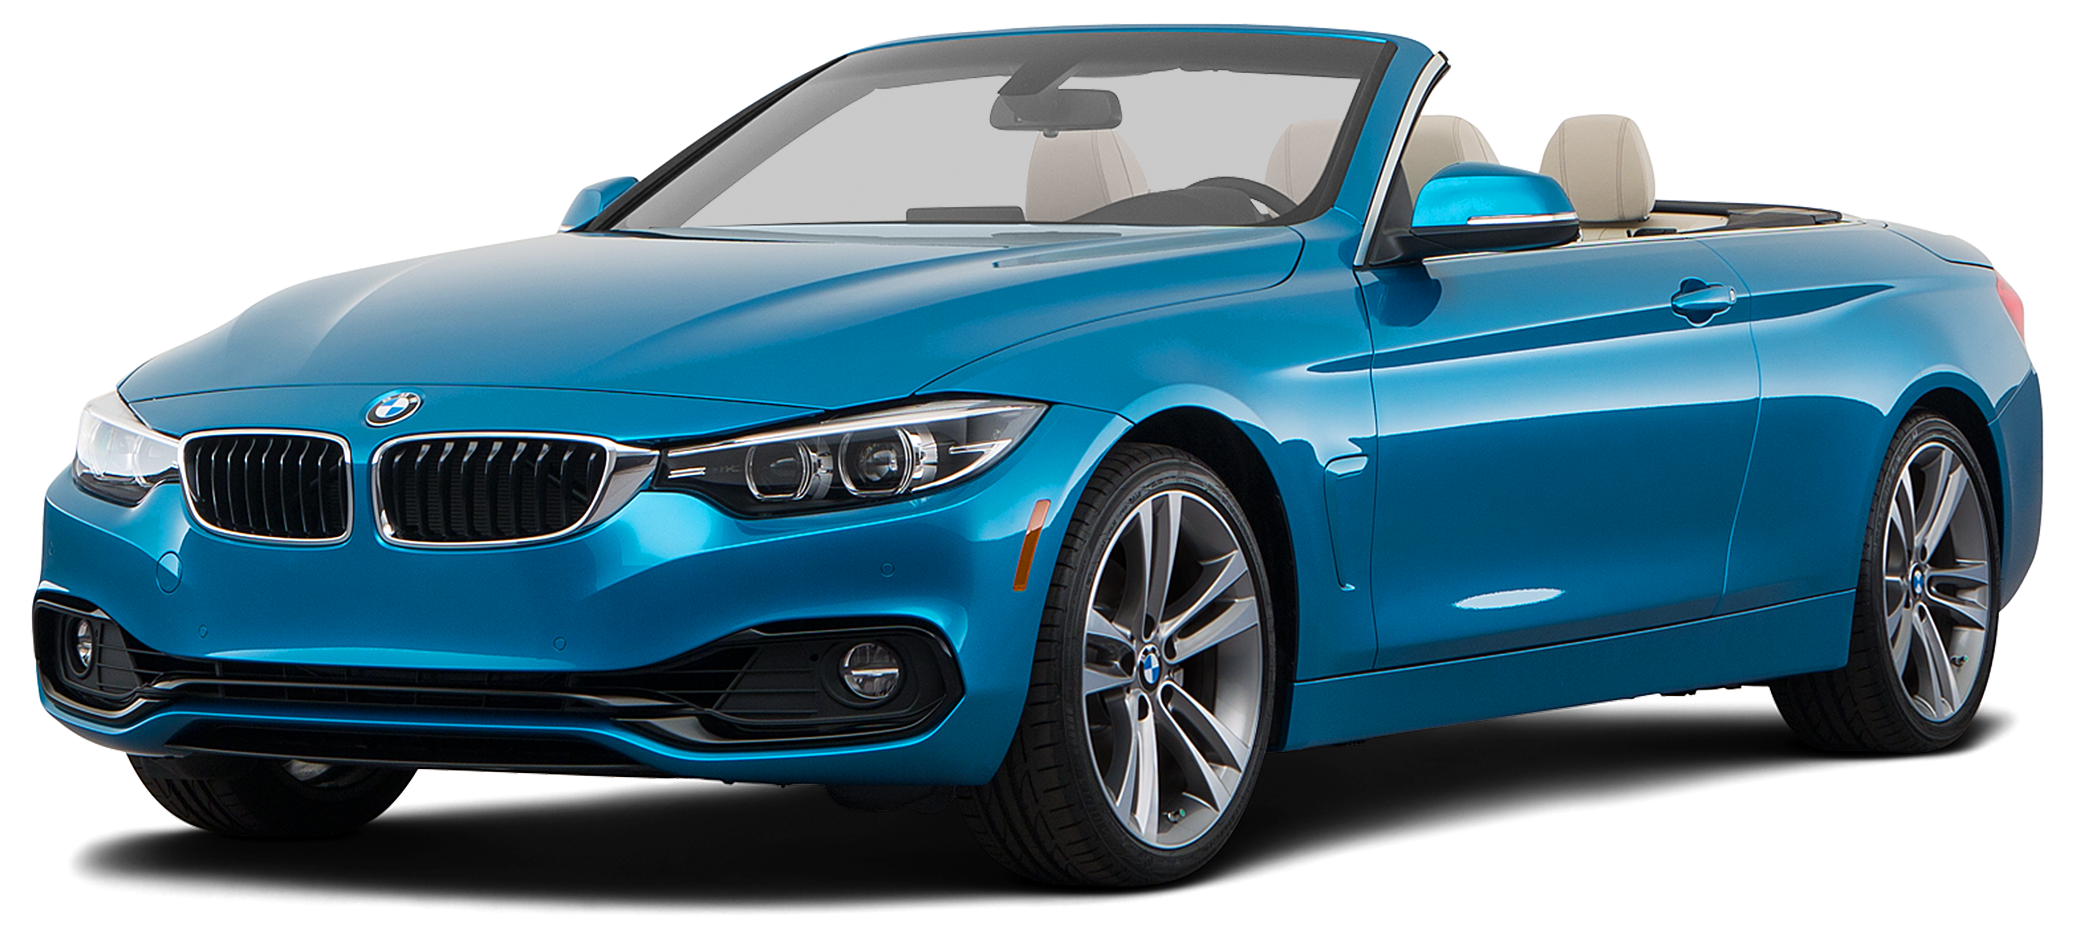 2019 BMW 430i Incentives, Specials & Offers in Ann Arbor MI